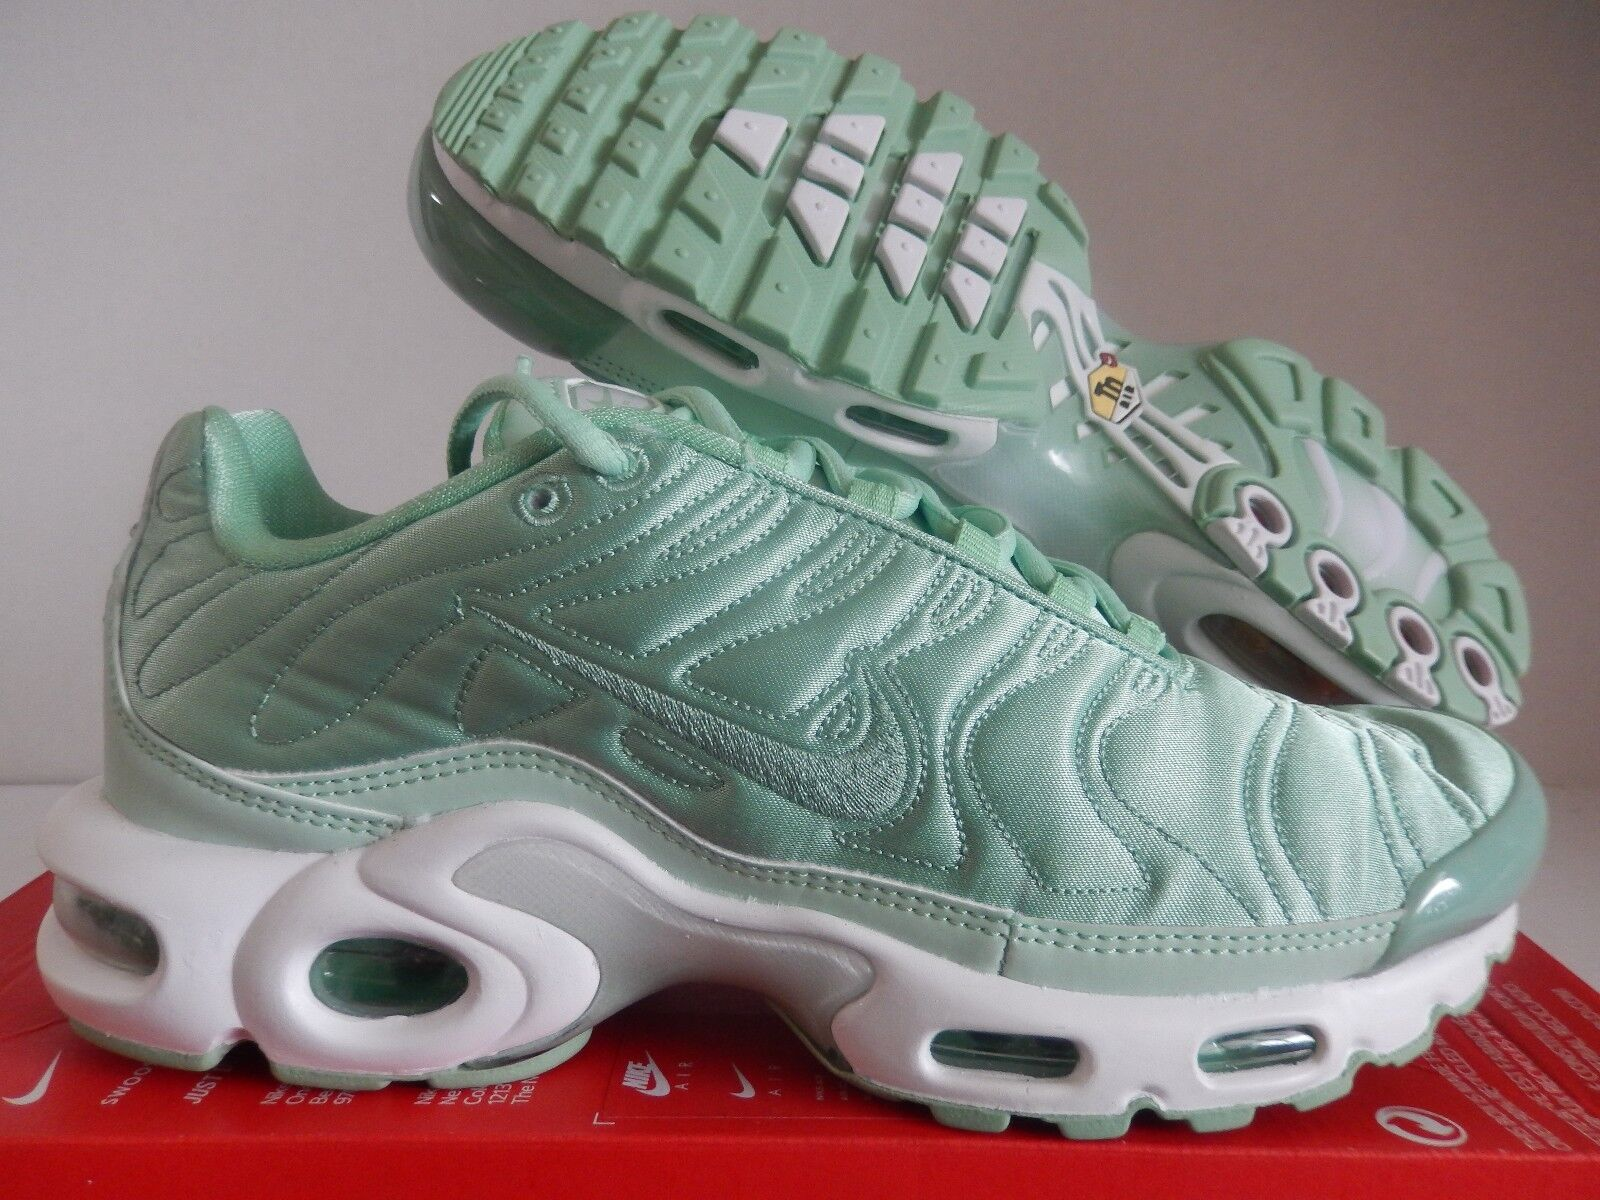 WMNS NIKE AIR MAX PLUS SE ENAMEL GREEN SATIN PACK SZ 8.5 [830768-331]